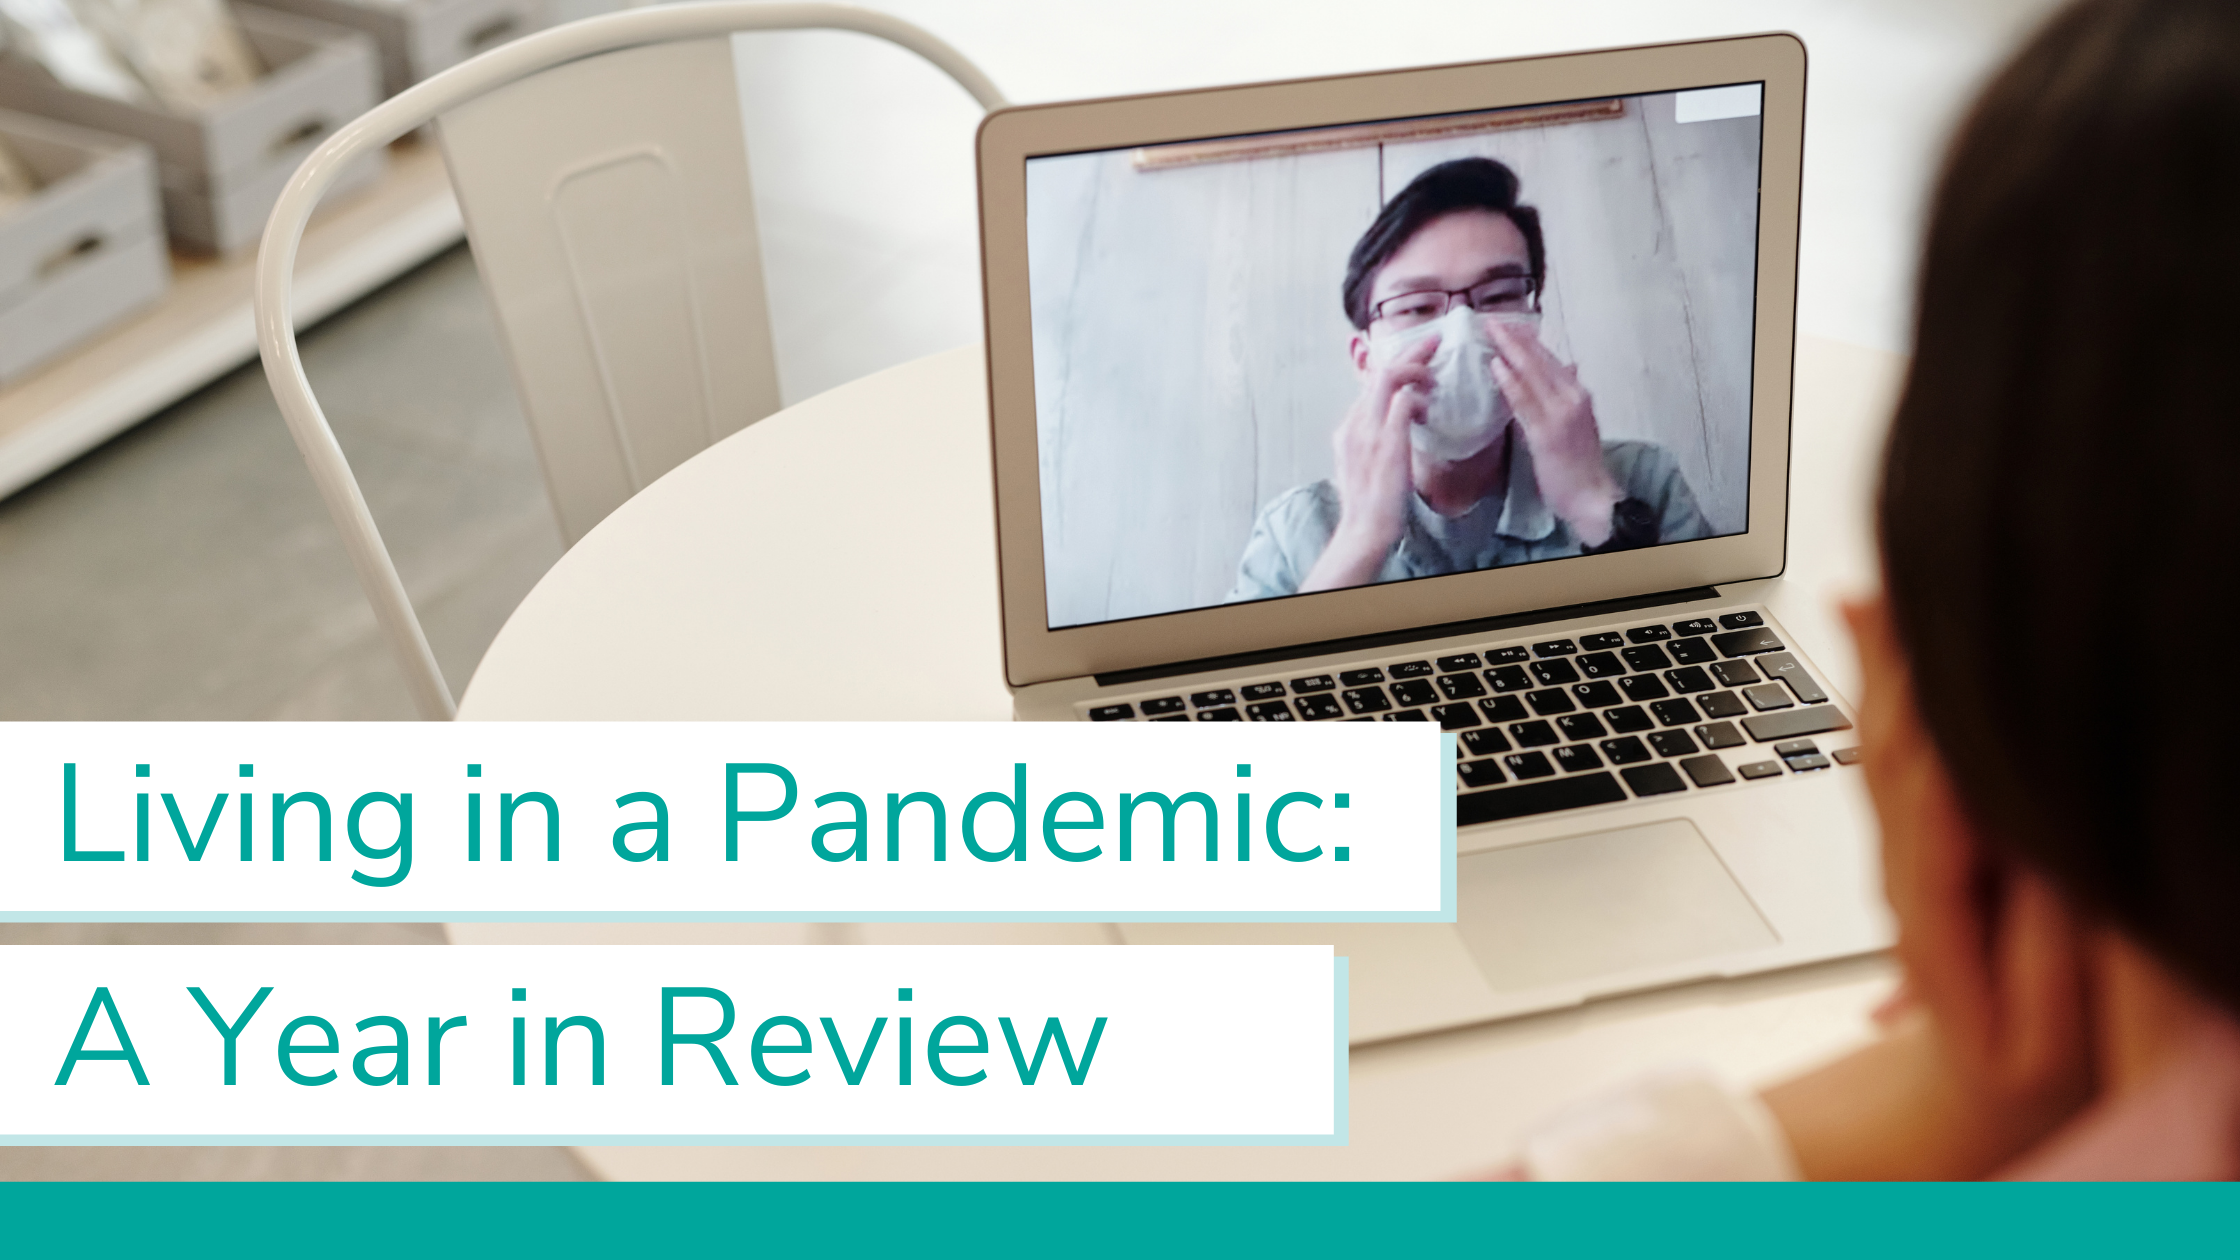 Living in a Pandemic: A Year in Review